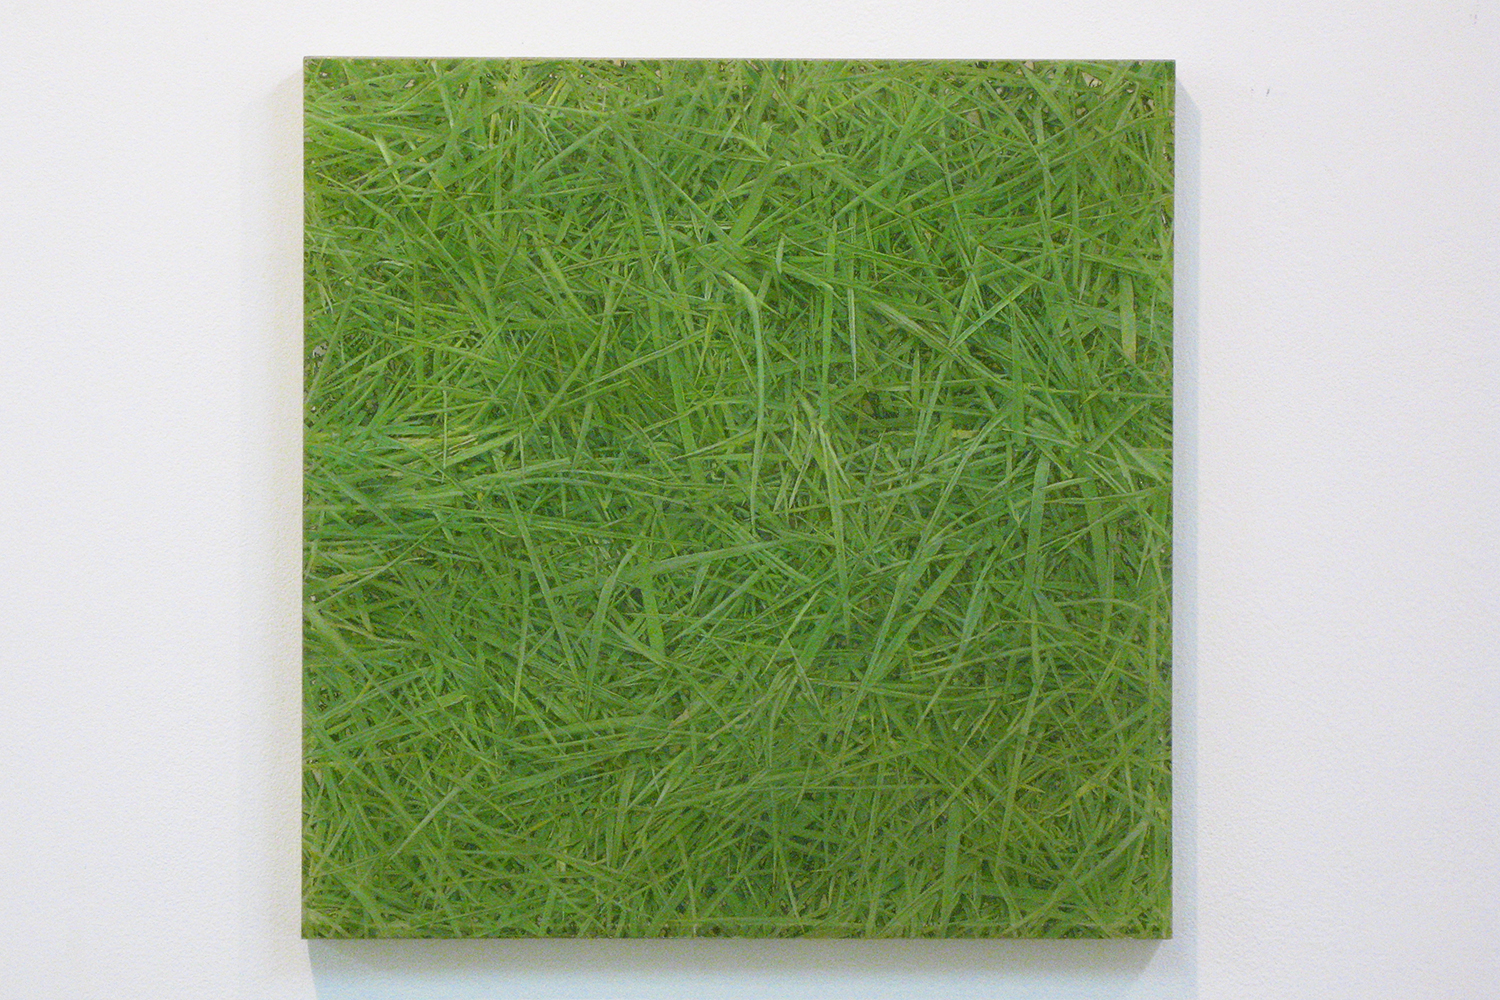 Photo painting-bush 叢|oil on polyester resin panel and mixed media|42.5 x 42.5 cm|2008